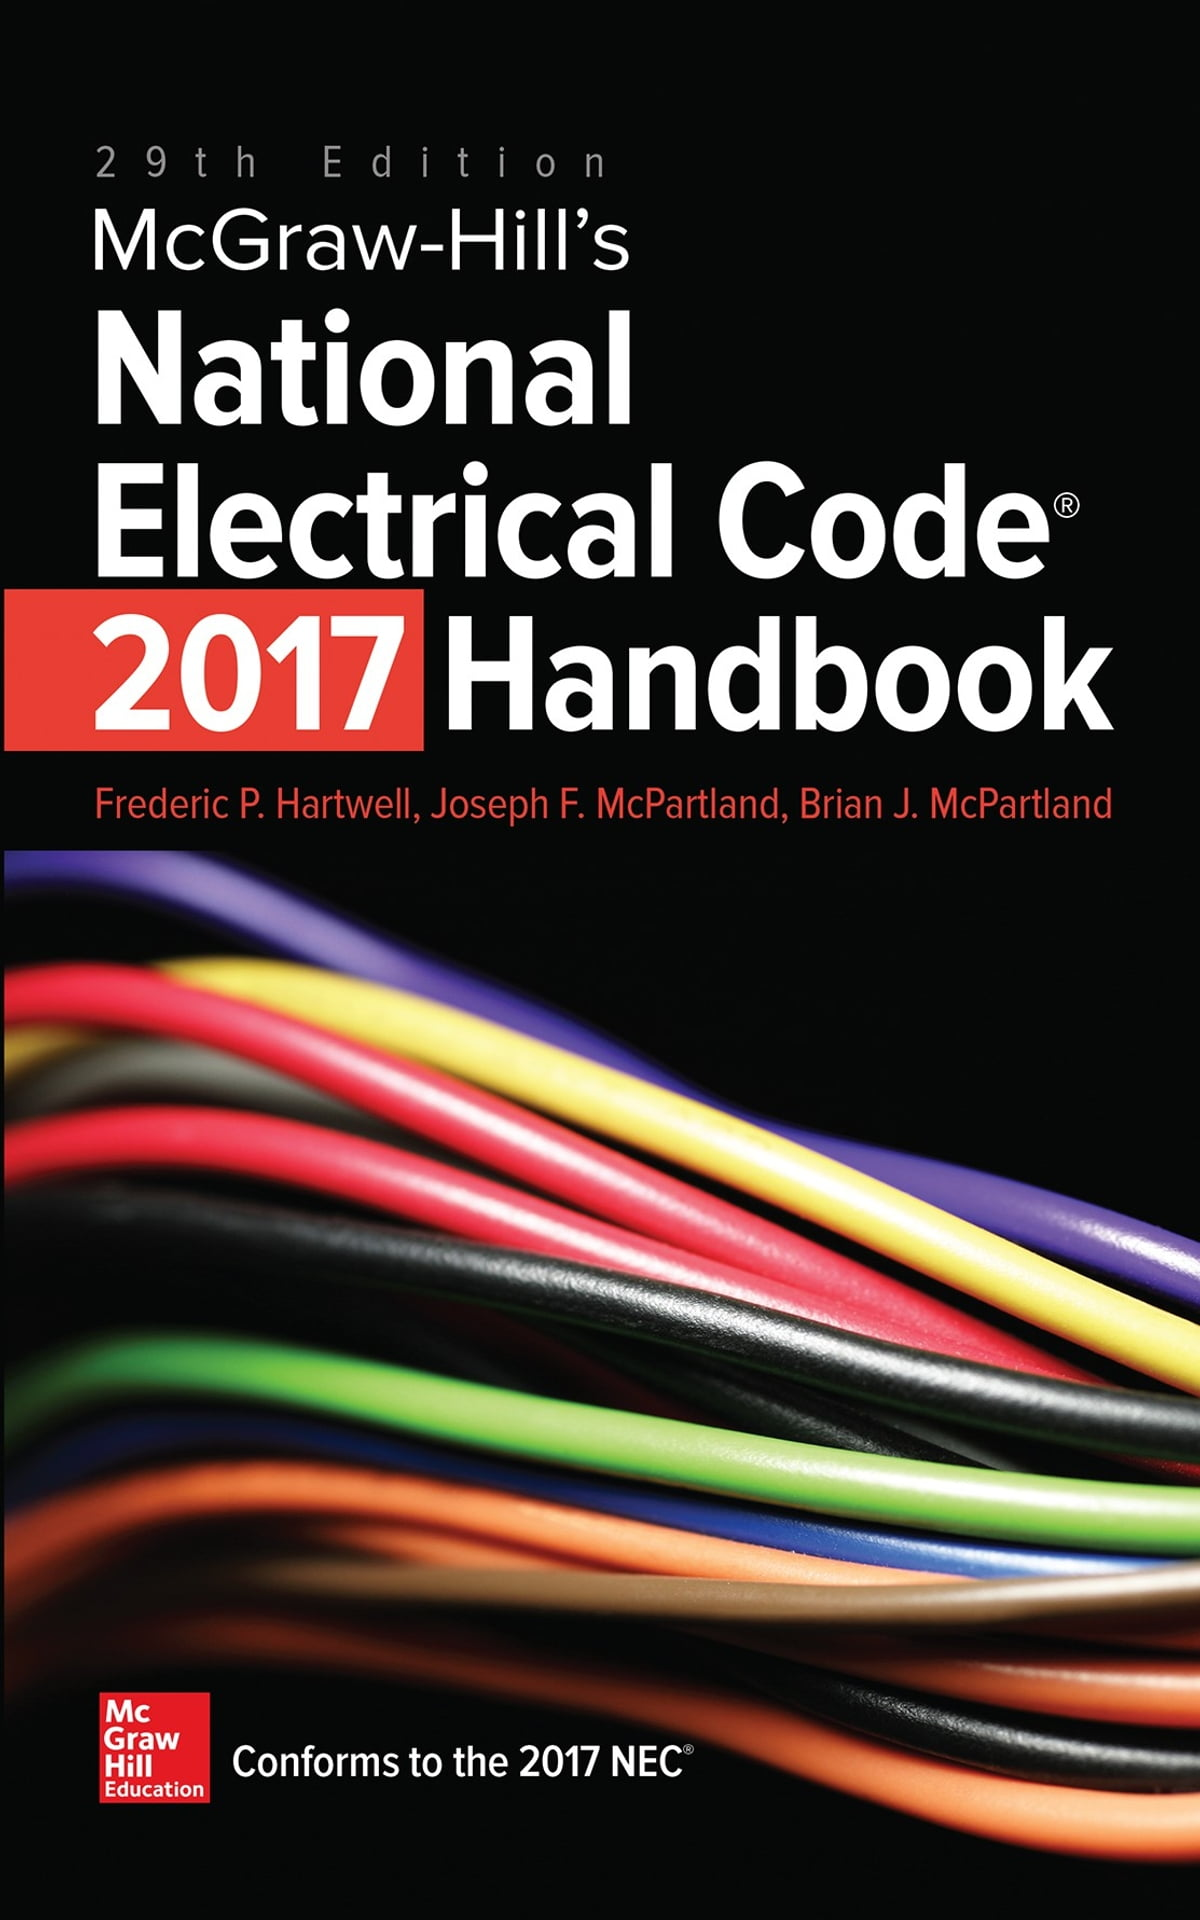 Mcgraw Hills National Electrical Code Nec 2017 Handbook 29th Guide To Wiring Current With 2014 Edition Rakuten Kobo